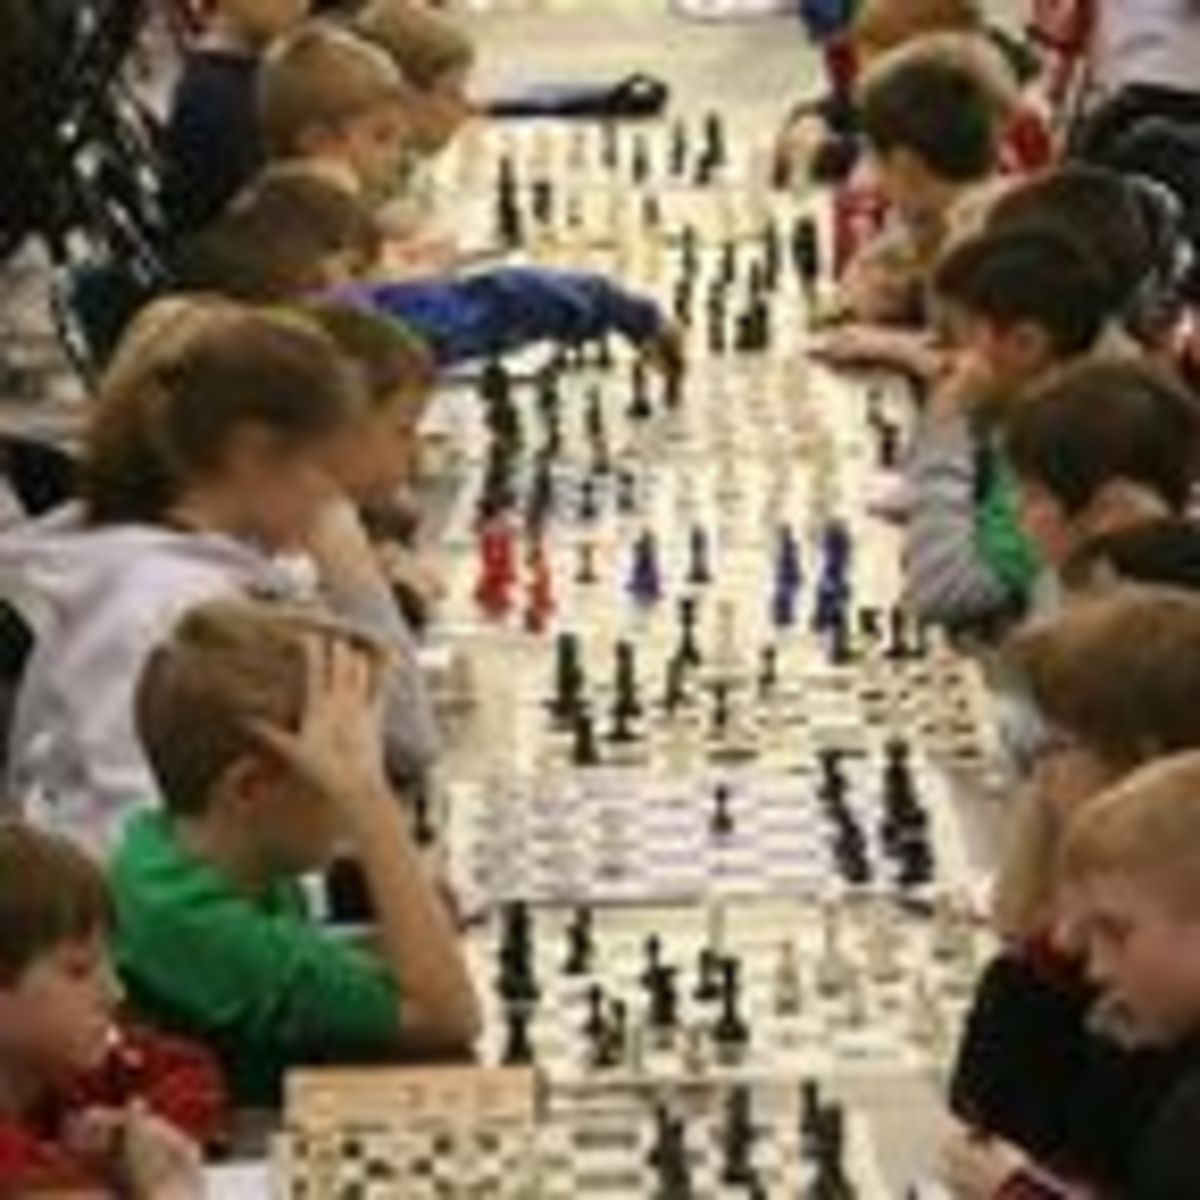 Does Chess Instruction Improve Math Ability? | Psychology Today